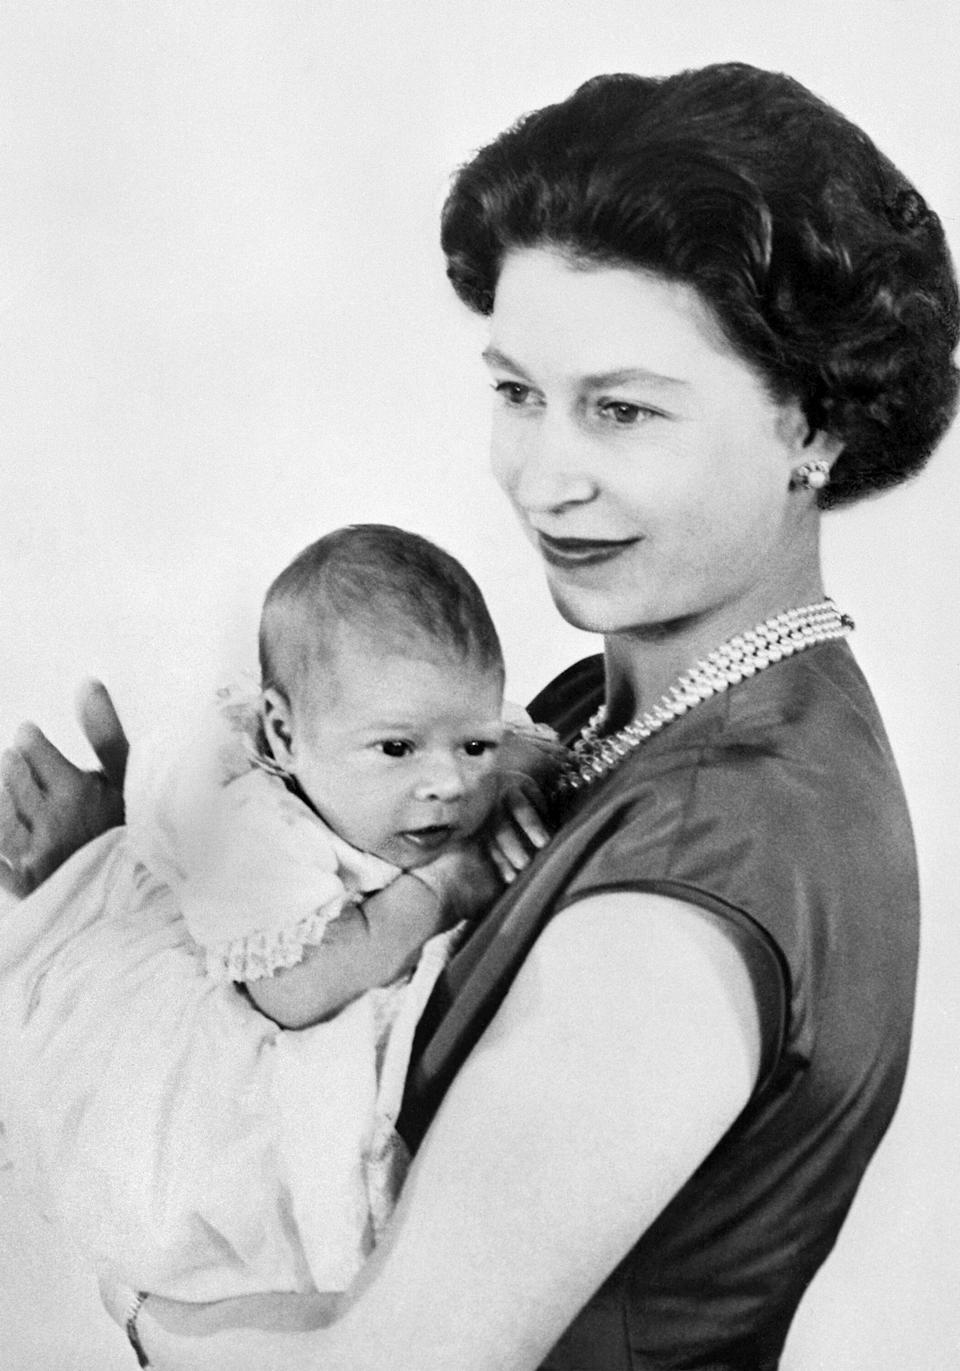 One of the first pictures of the newborn Prince Andrew. The prince was born Feb. 19, 1960.